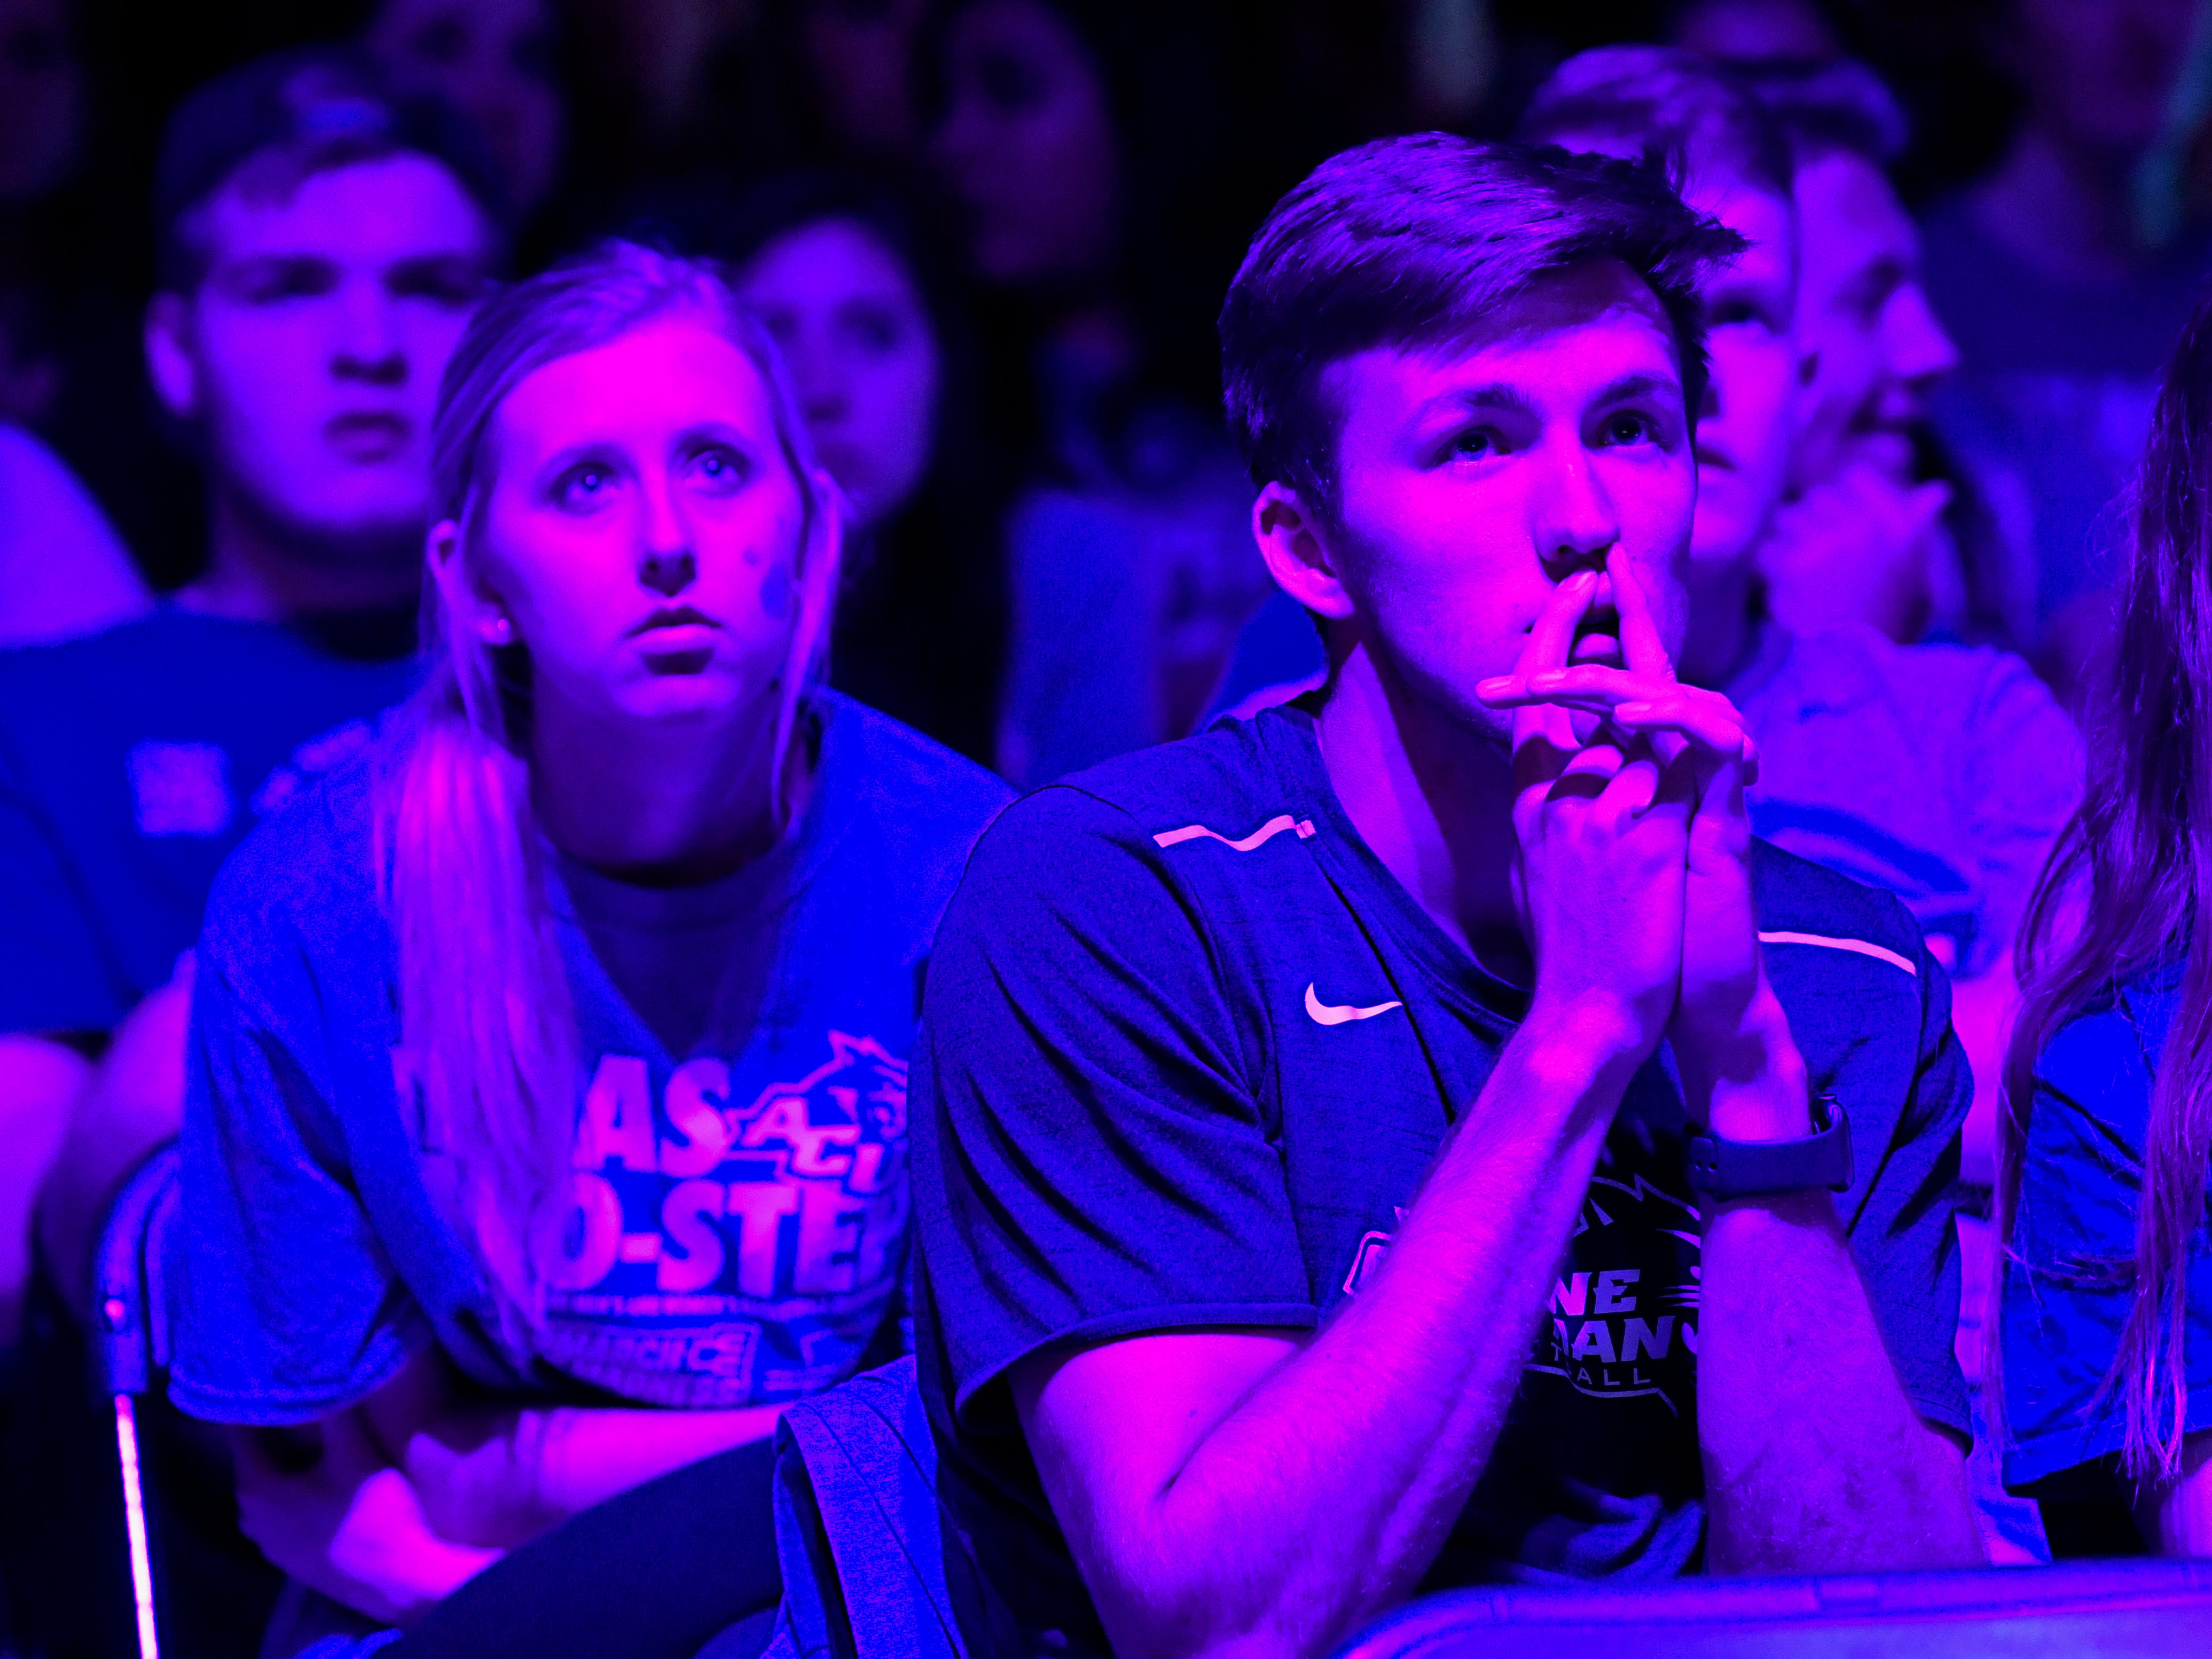 Cole Palka watches the final moments of the Abilene Christian University men's team game against basketball powerhouse University of Kentucky Thursday March 21, 2019. ACU held a watch party in Moody Coliseum for fans to watch the Wildcats teams play in their first-ever trip to the NCAA Tournament. Final score was 79-44, Kentucky.